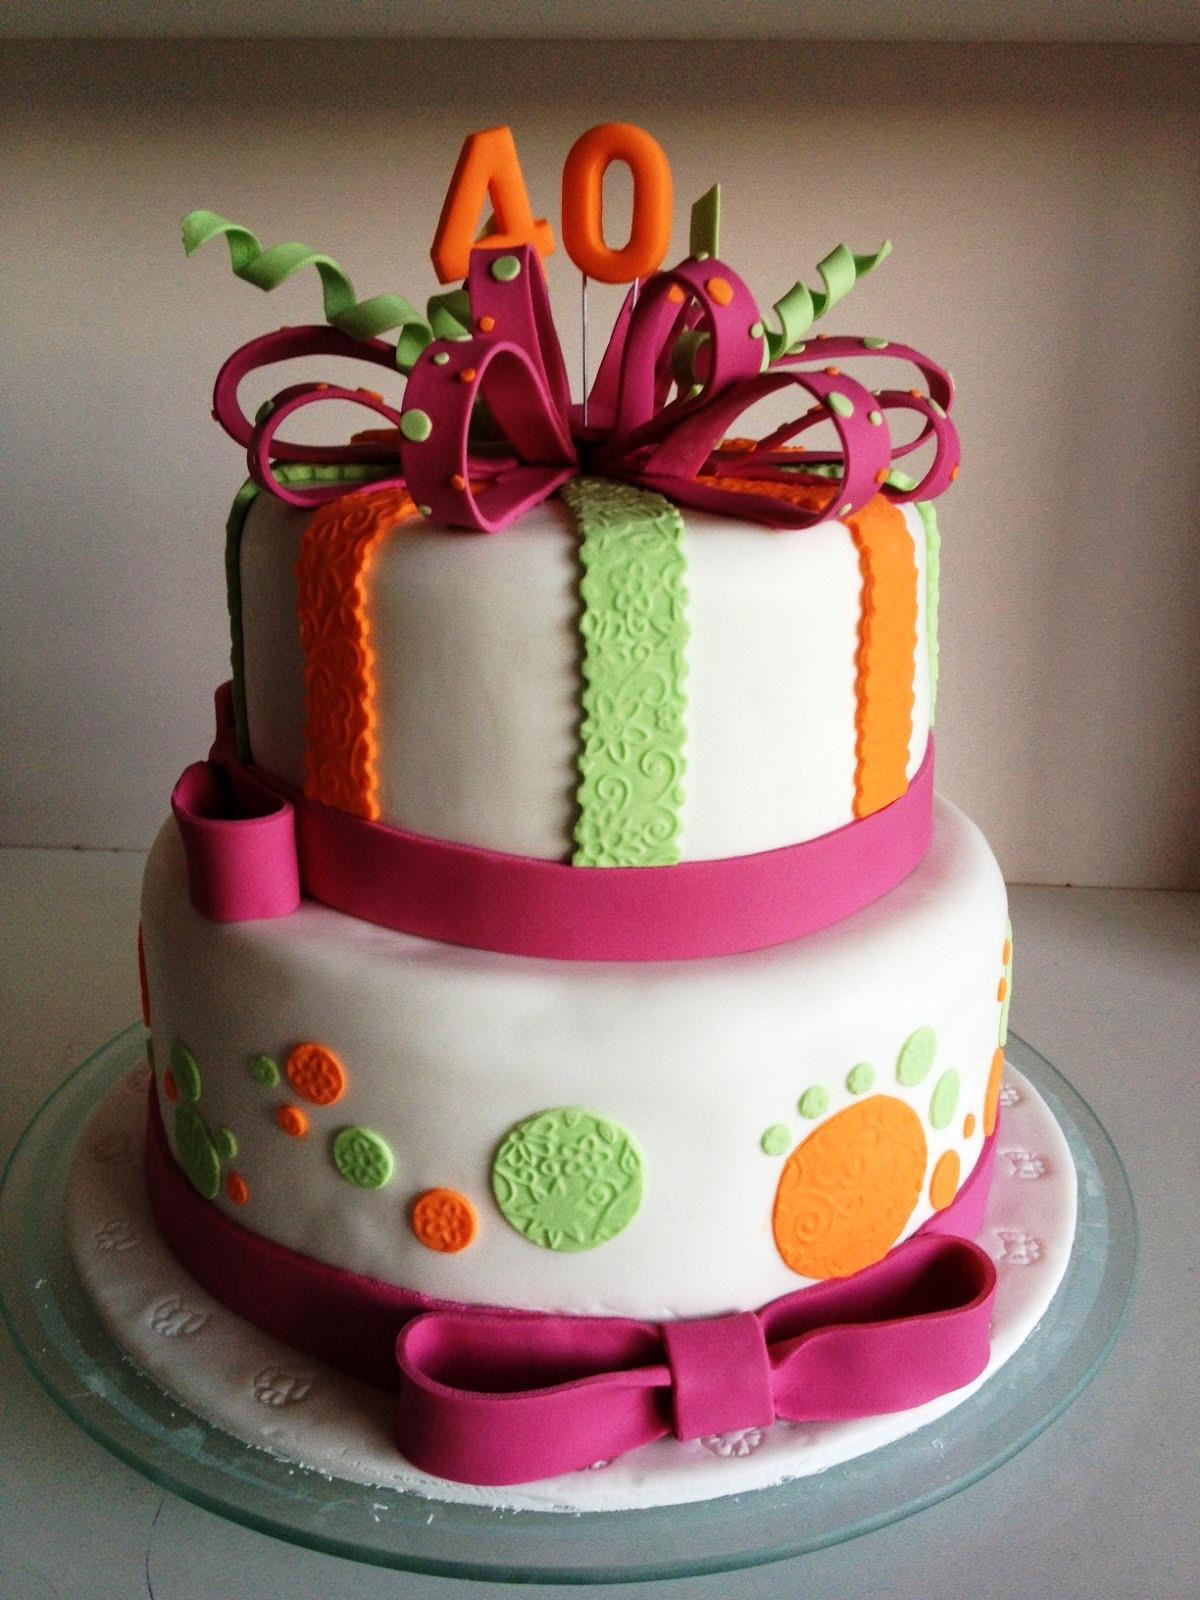 Best ideas about 40th Birthday Cake Ideas . Save or Pin 40th Birthday Cake Ideas and Recipes for Men — Protoblogr Now.